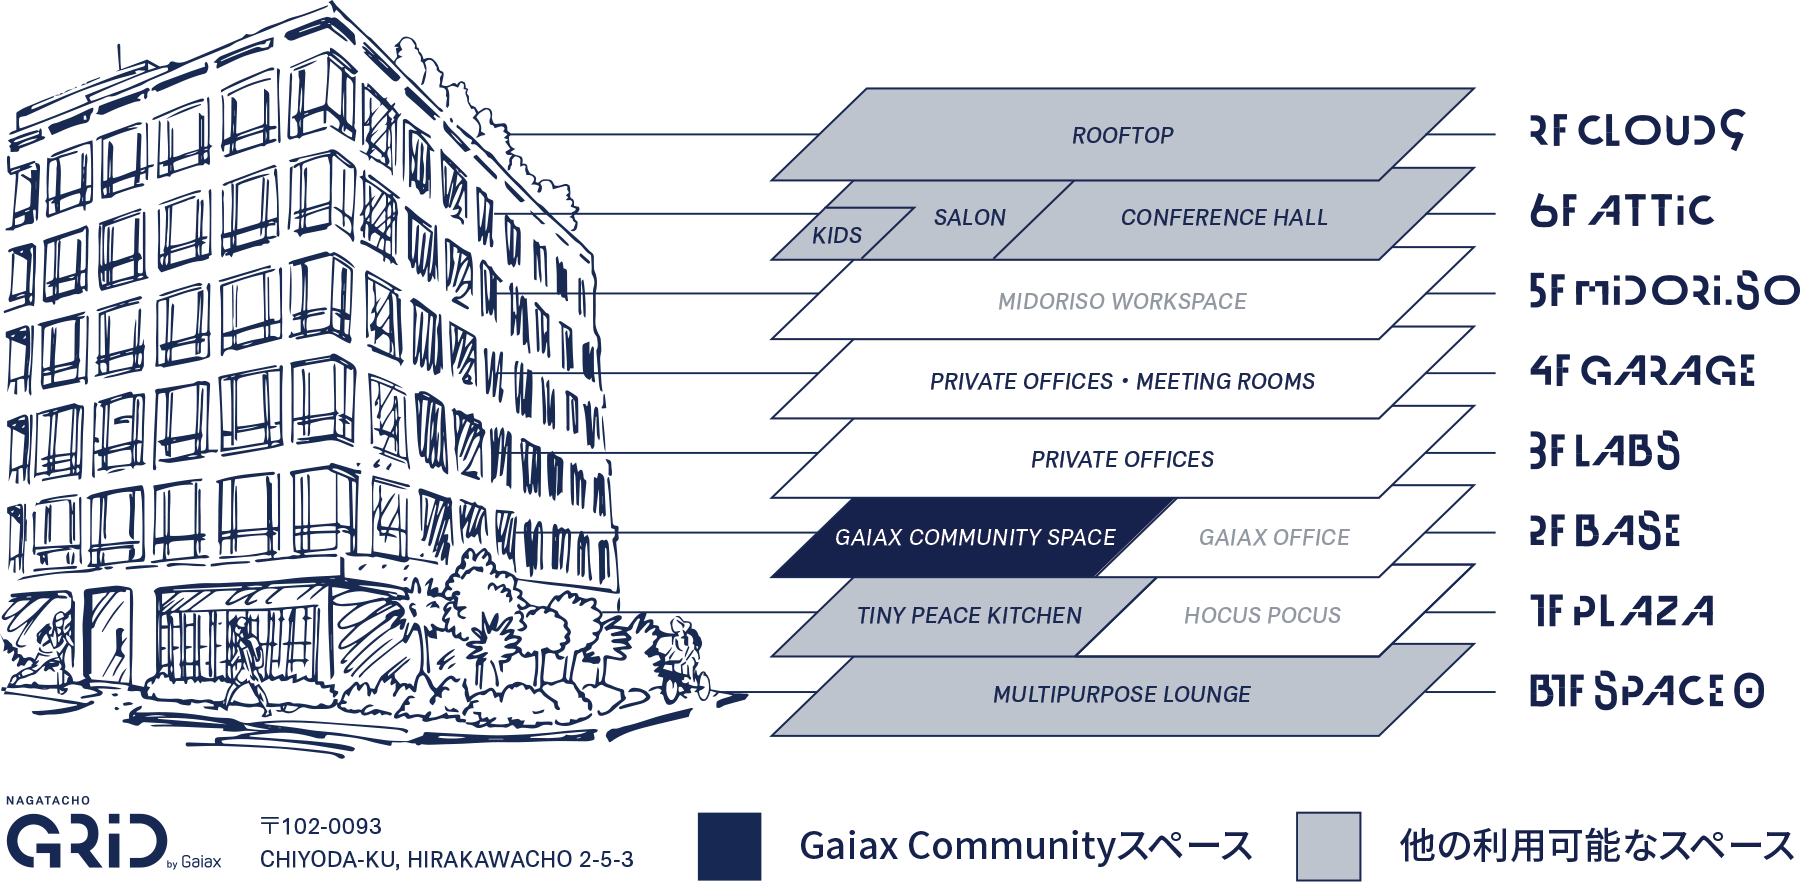 Gaiax Community space